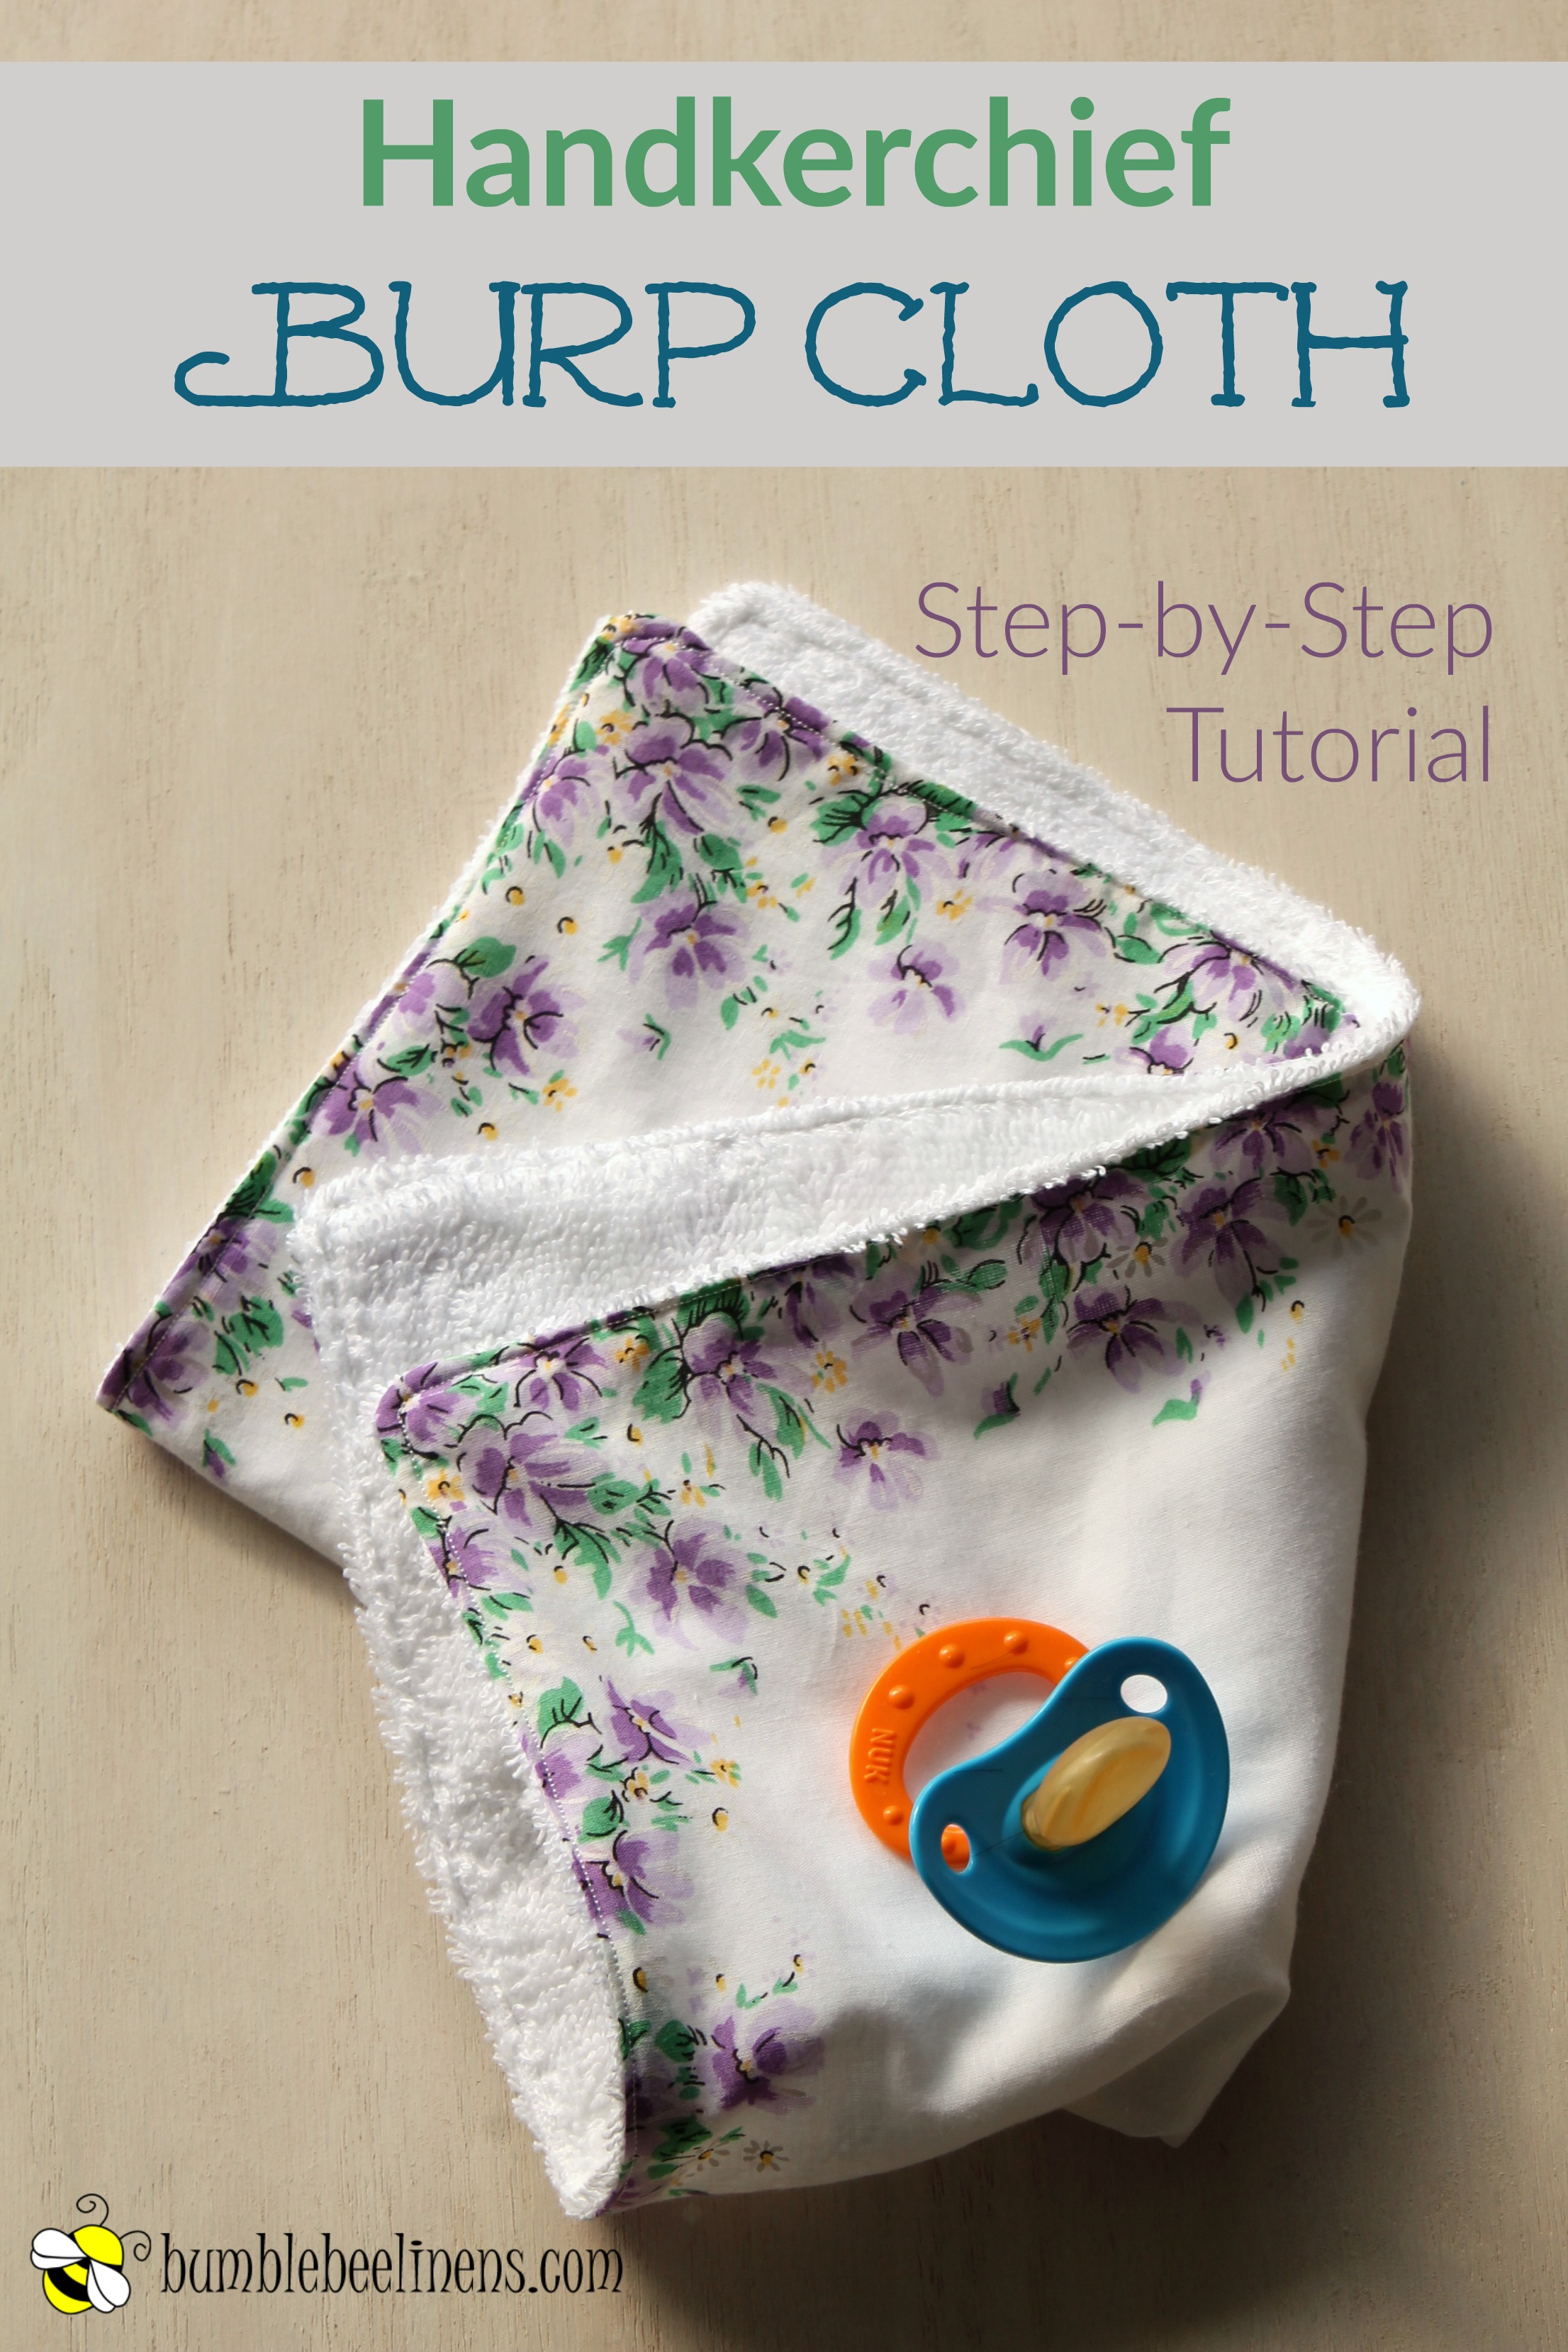 Every mom with a little one will love this adorable hankie burp cloth